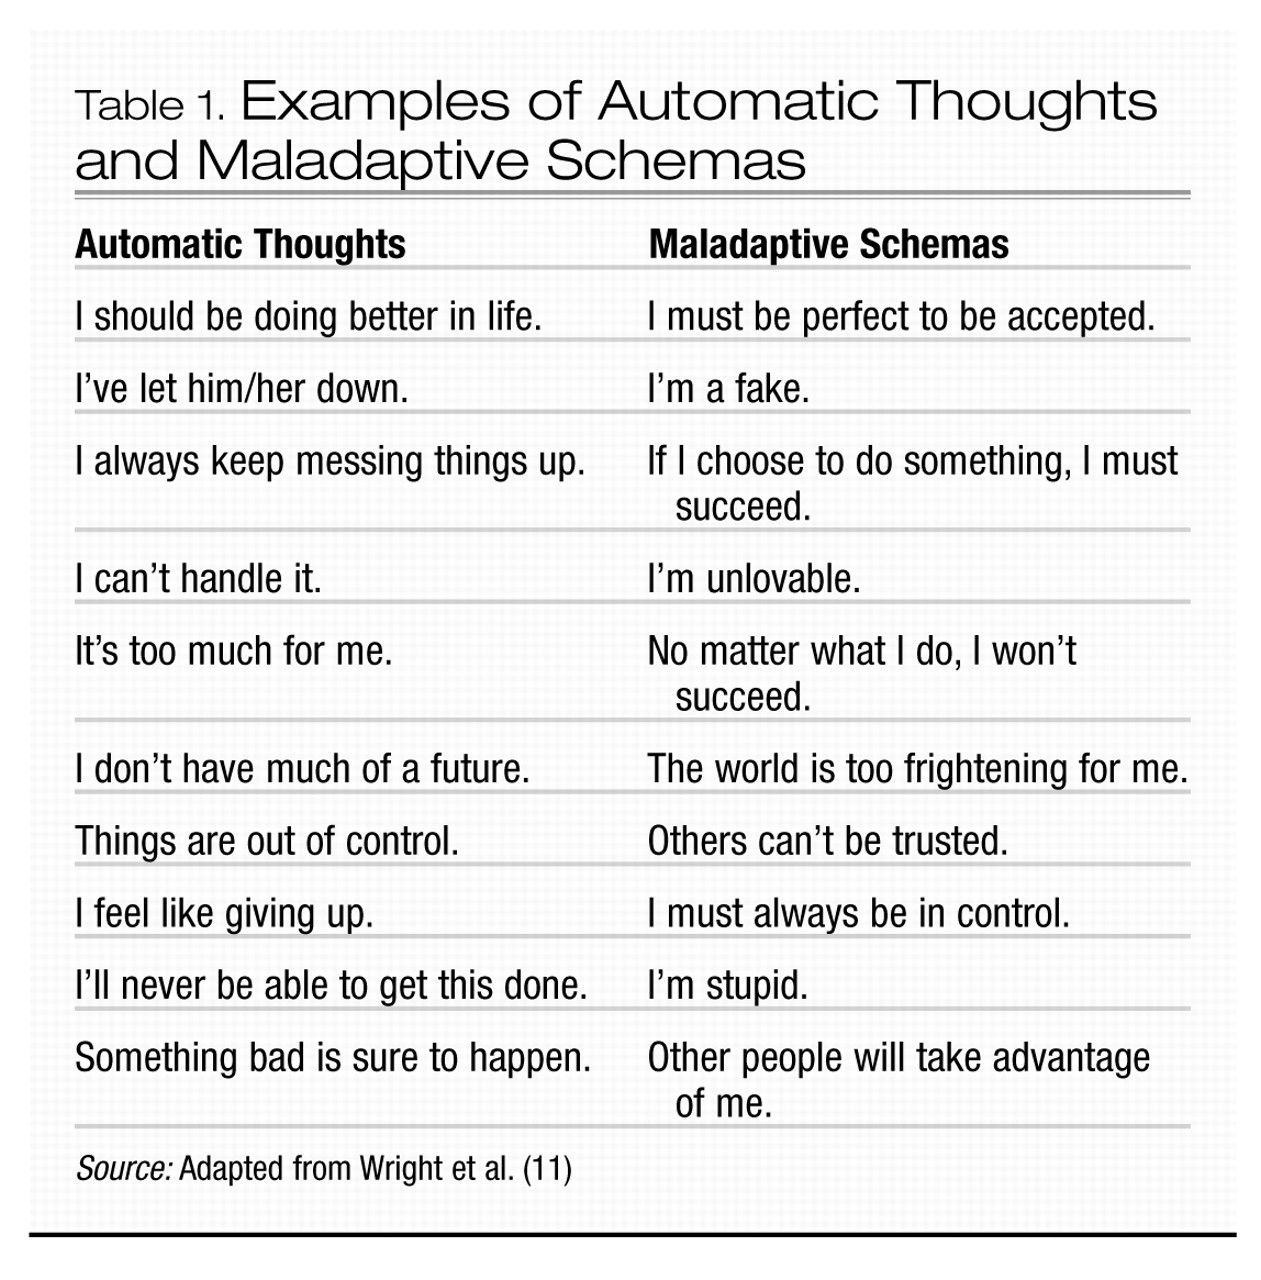 Examples Of Automatic Thoughts And Maladaptive Schemas